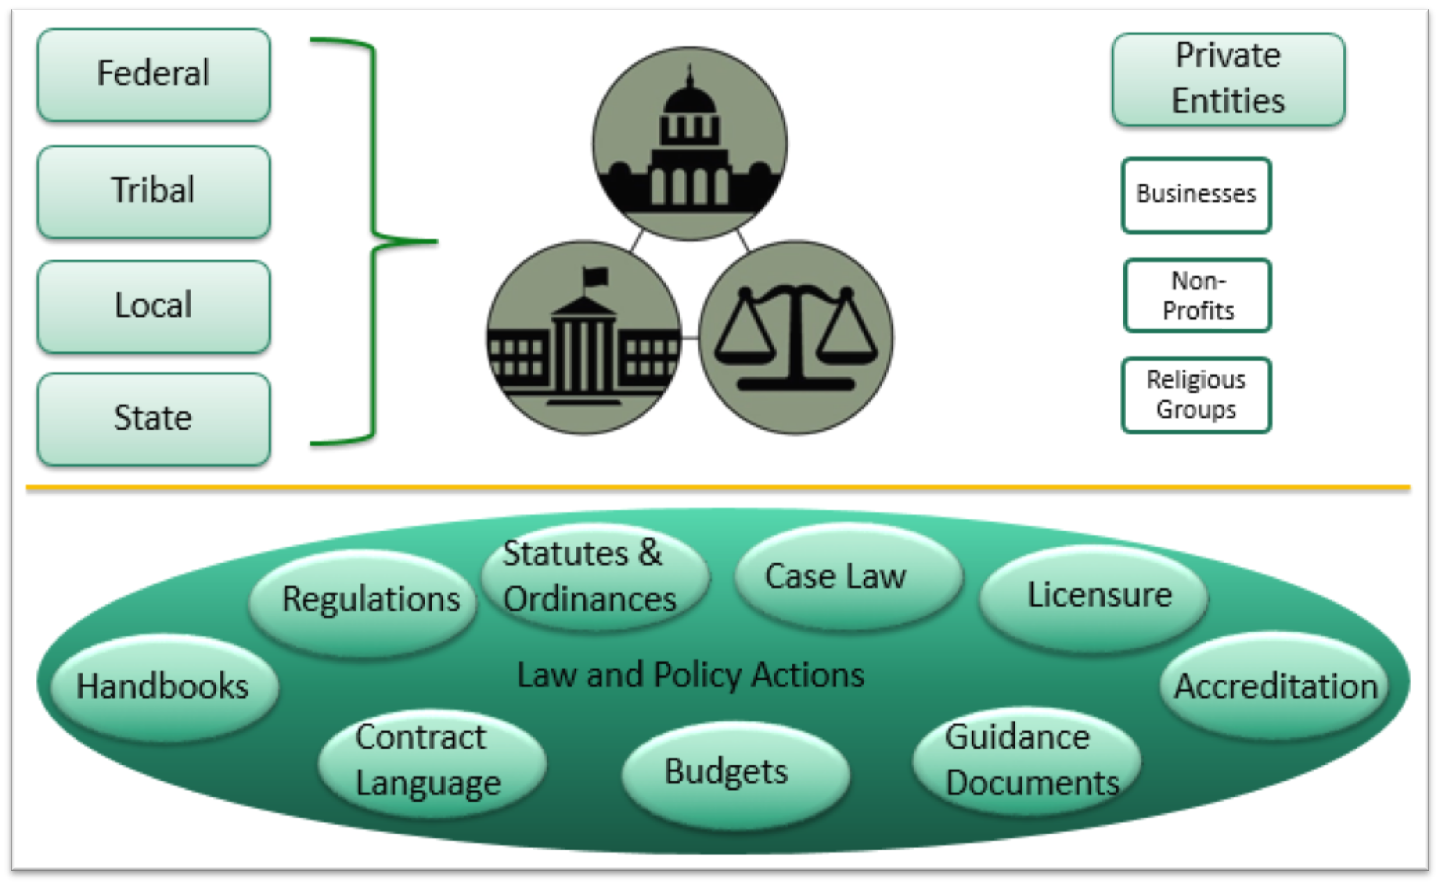 Law and Policy Activities and Actions Chart Illustration.